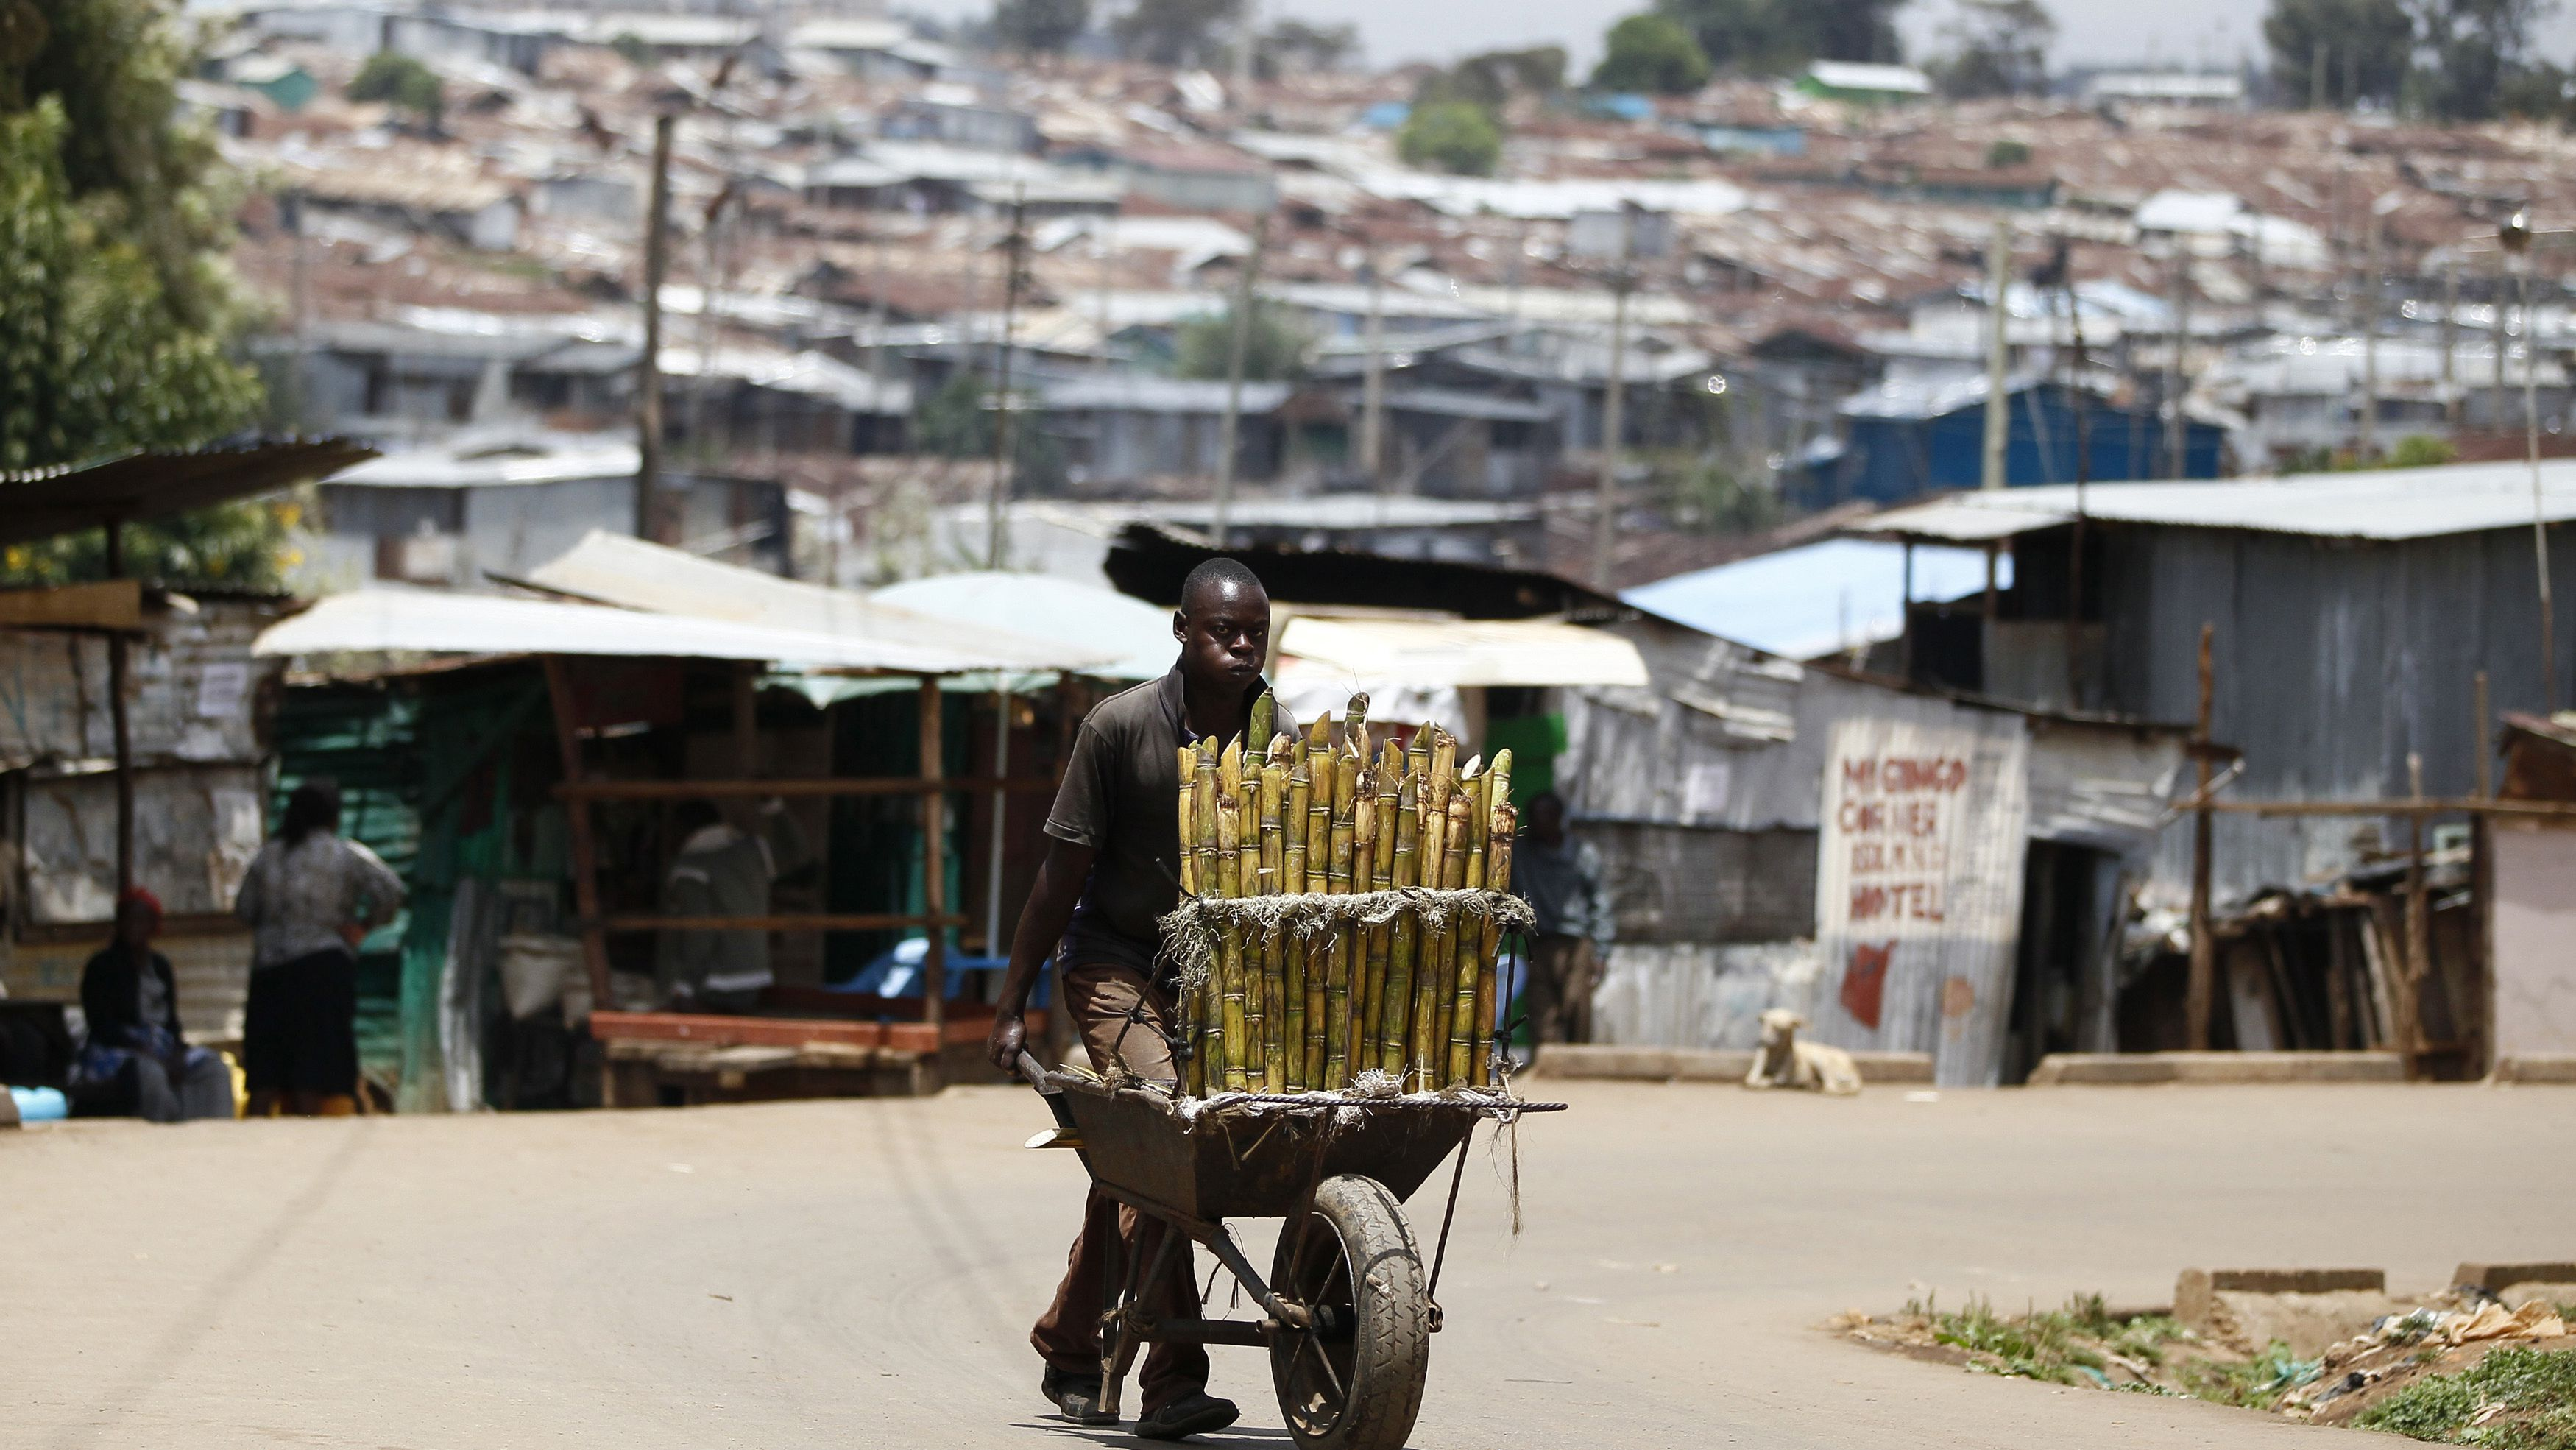 A trader pushes wheelbarrow loaded with sugar-cane for sale along a street in Kibera slum, home to over 1 million people, in Kenya's capital Nairobi, March 7, 2014. REUTERS/Thomas Mukoya (KENYA - Tags: CITYSCAPE SOCIETY)